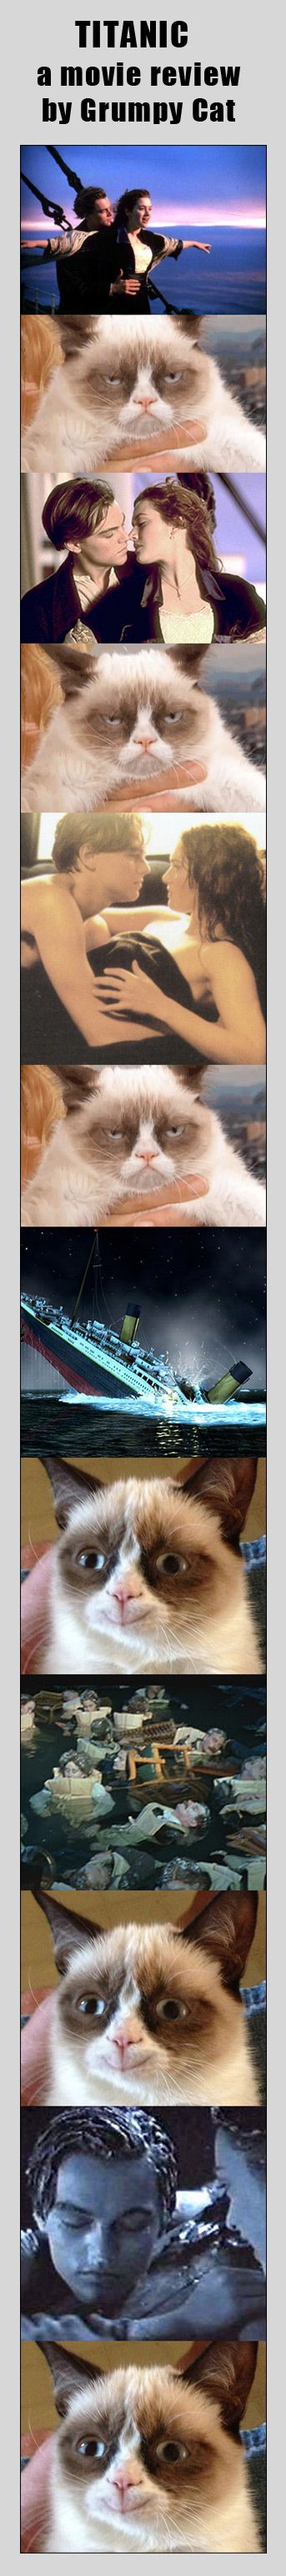 "Tard the Grumpy Cat reviews the Titanic movie (Please check out my ""Animals"" board for more funny animal photos/ Tard the Grumpy Cat memes)"